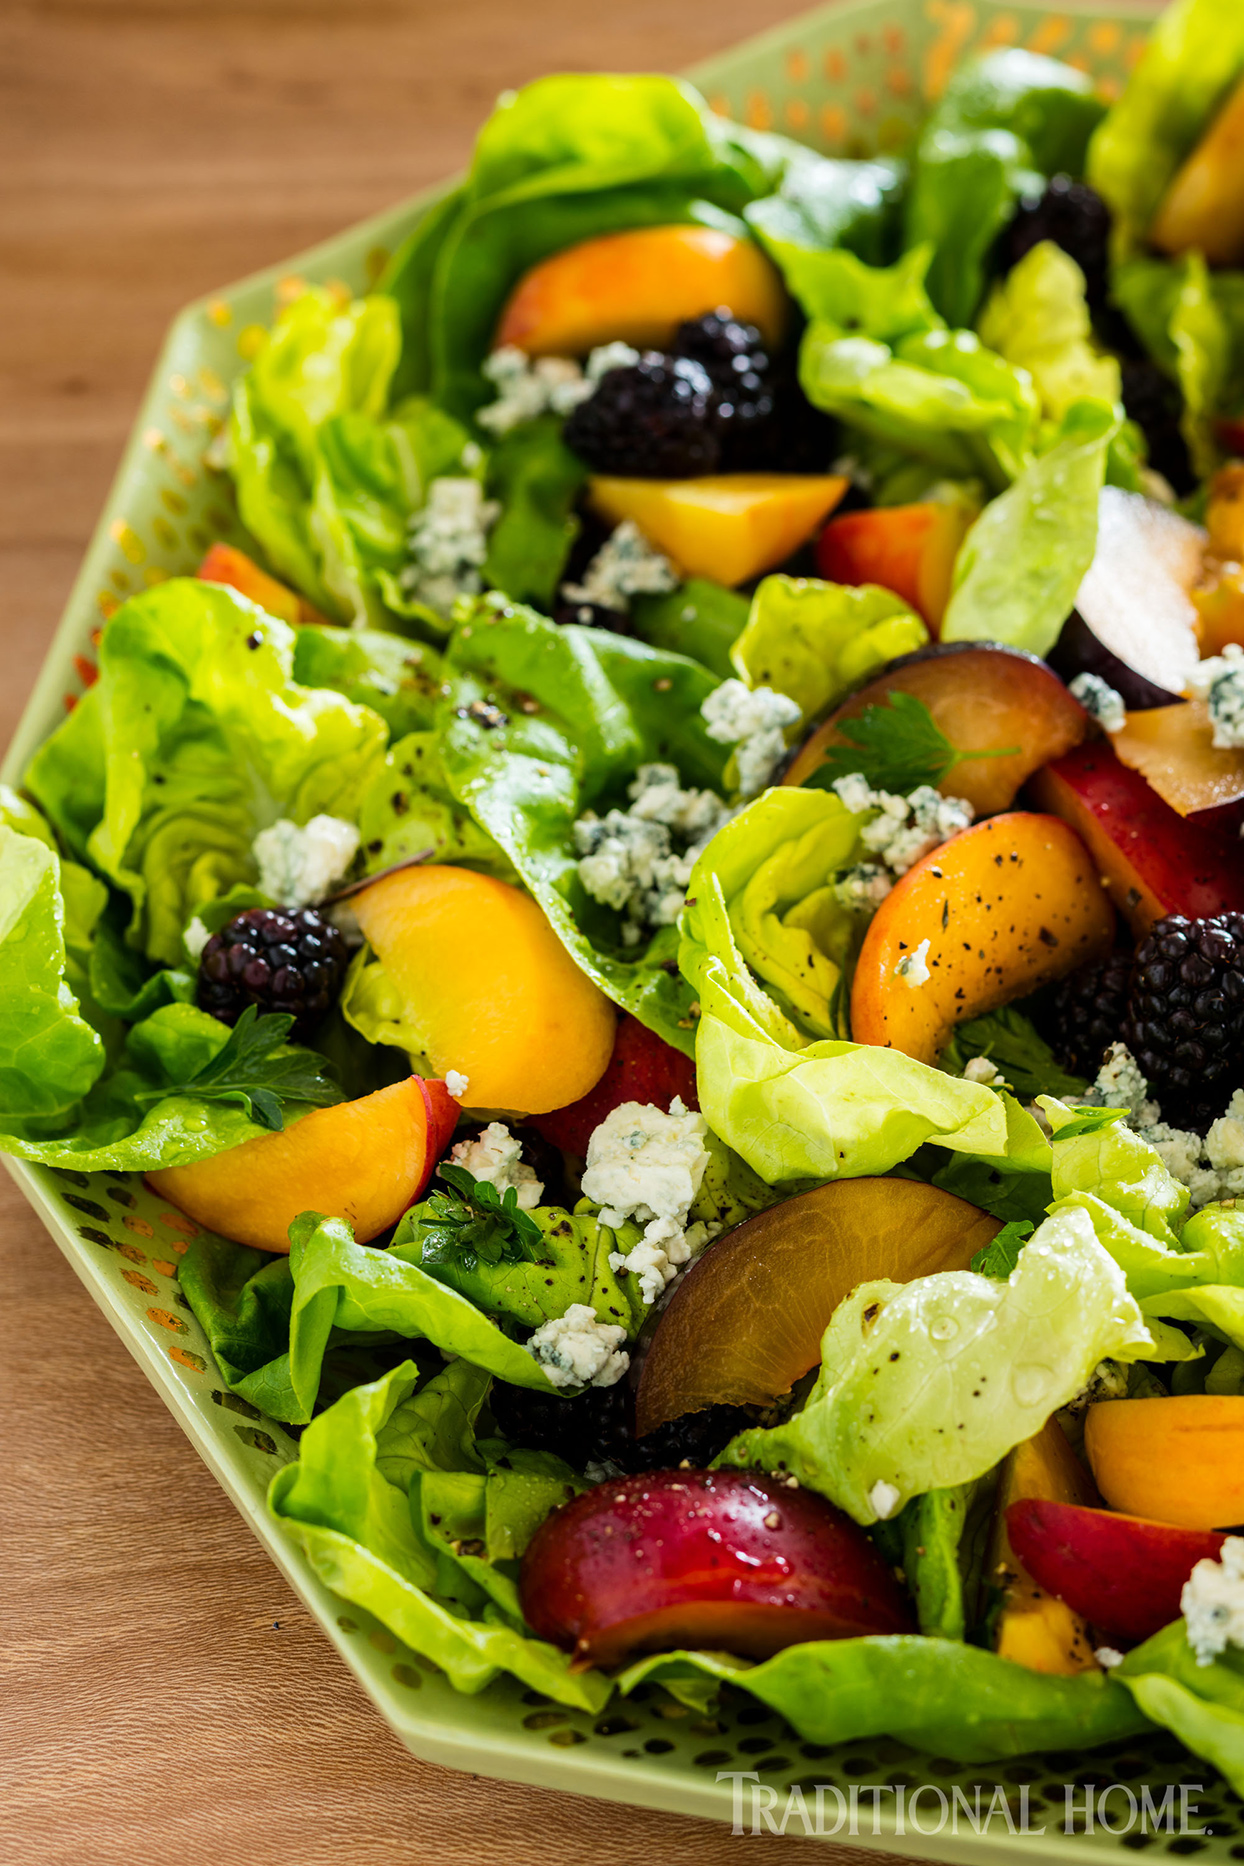 Butter Lettuce Salad with Stone Fruit and Blackberries